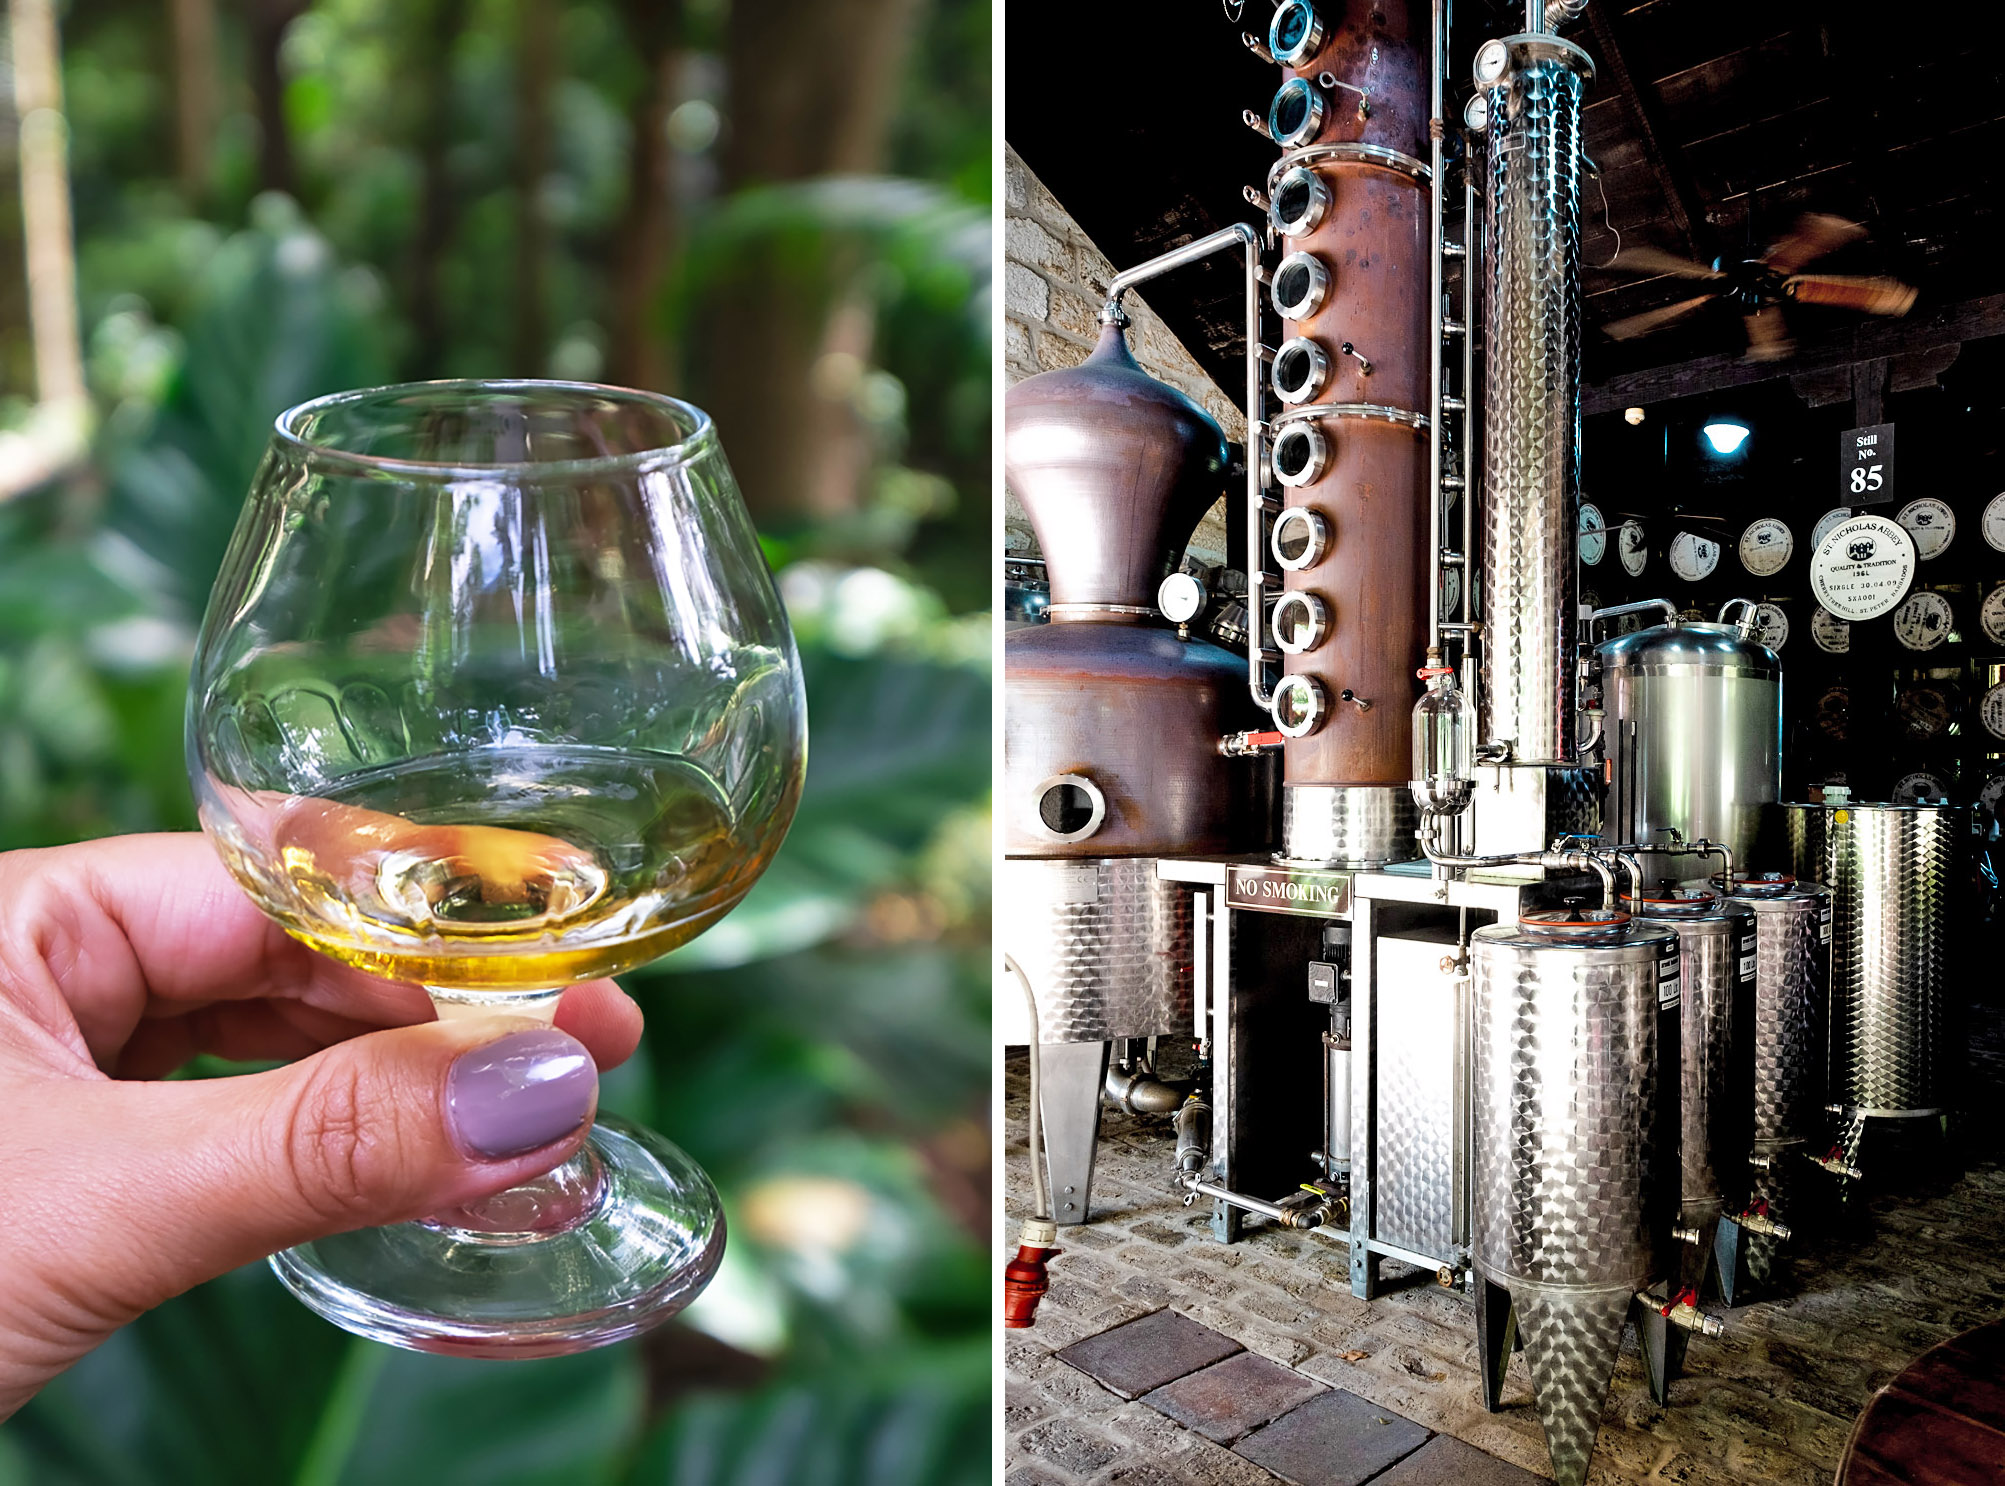 St Nicholas Abbey rum distillery | A 5-Day Itinerary of What to See and Eat around Barbados